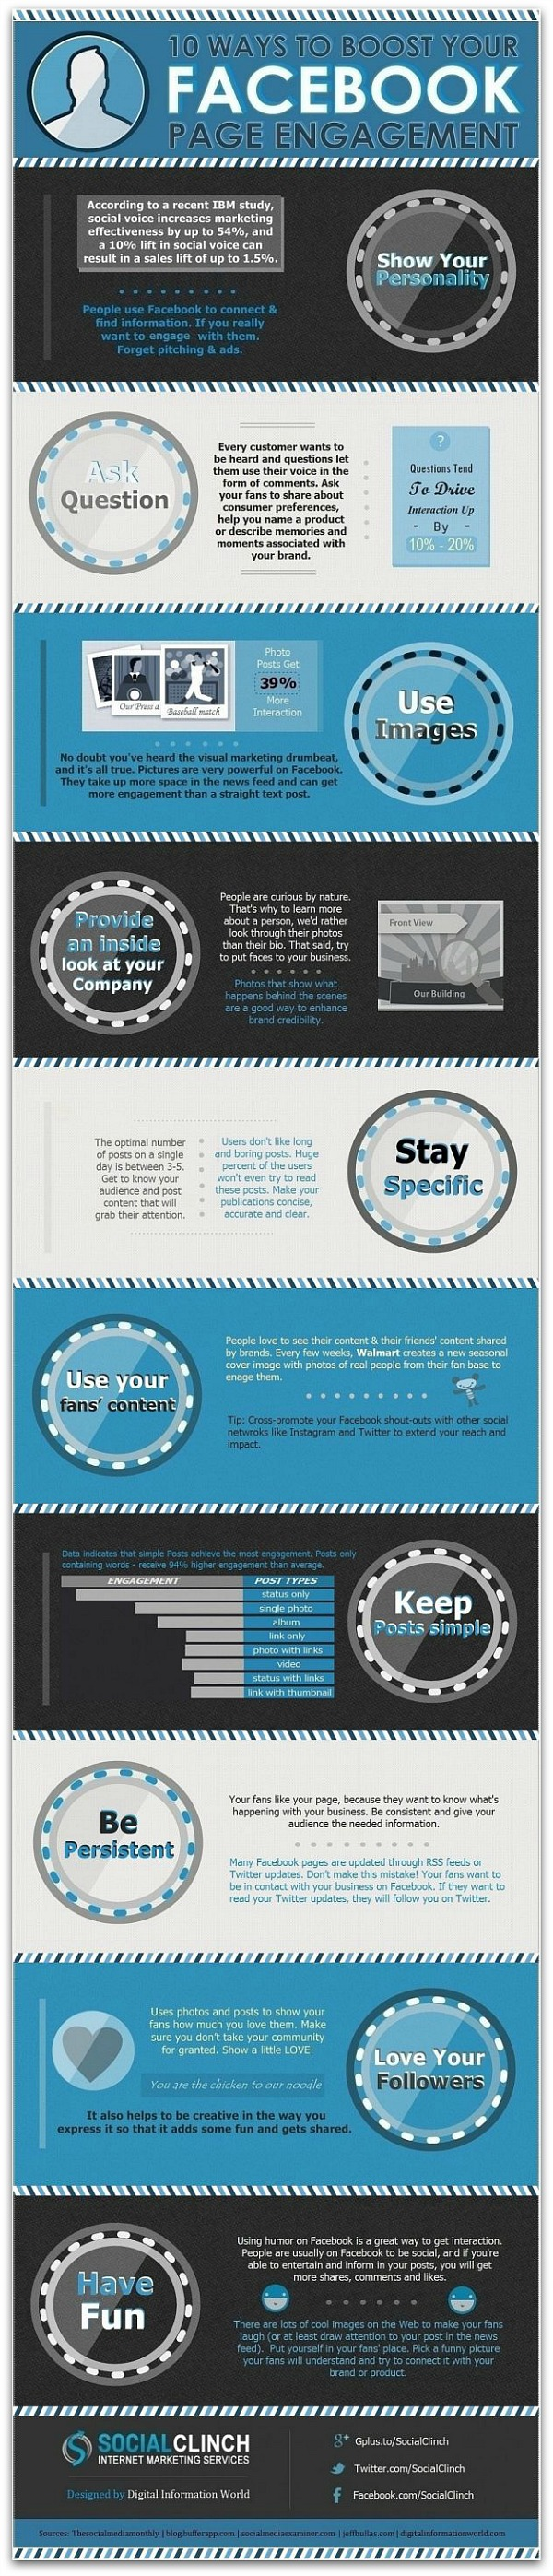 Boost_Facebook_Engagement_Infographic